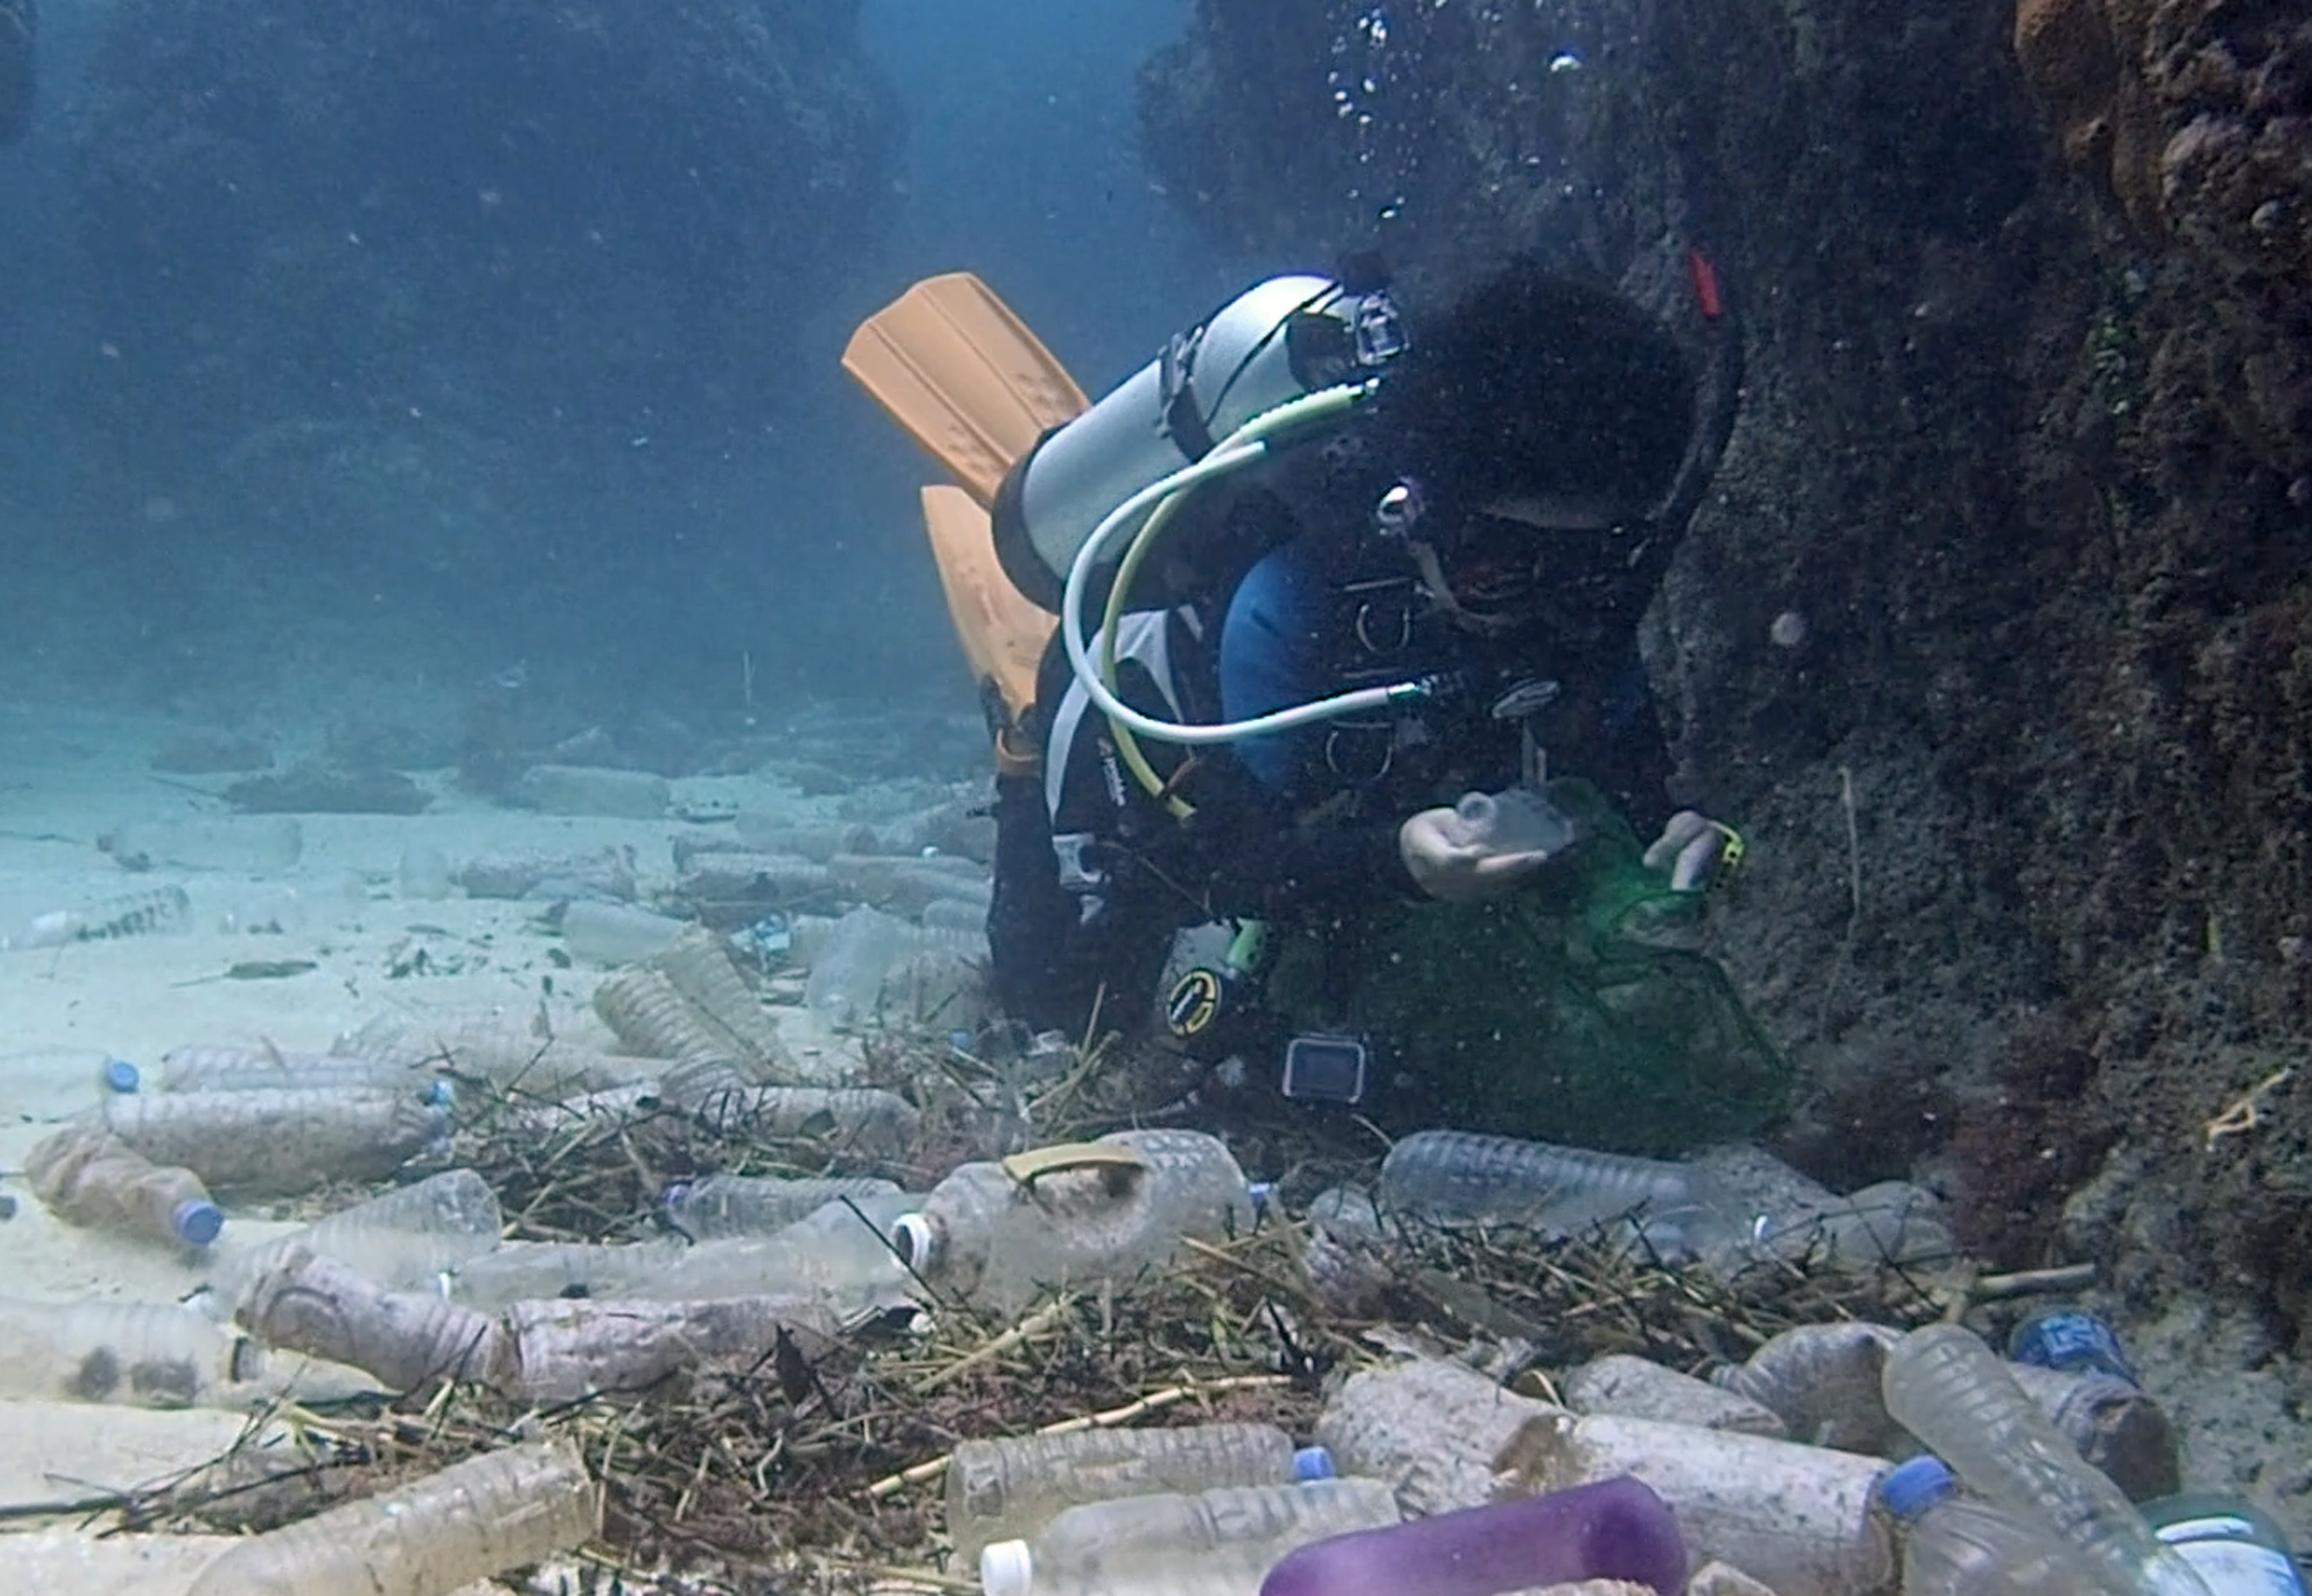 Shocking Footage Shows Extent Of Plastic Waste On Bottom